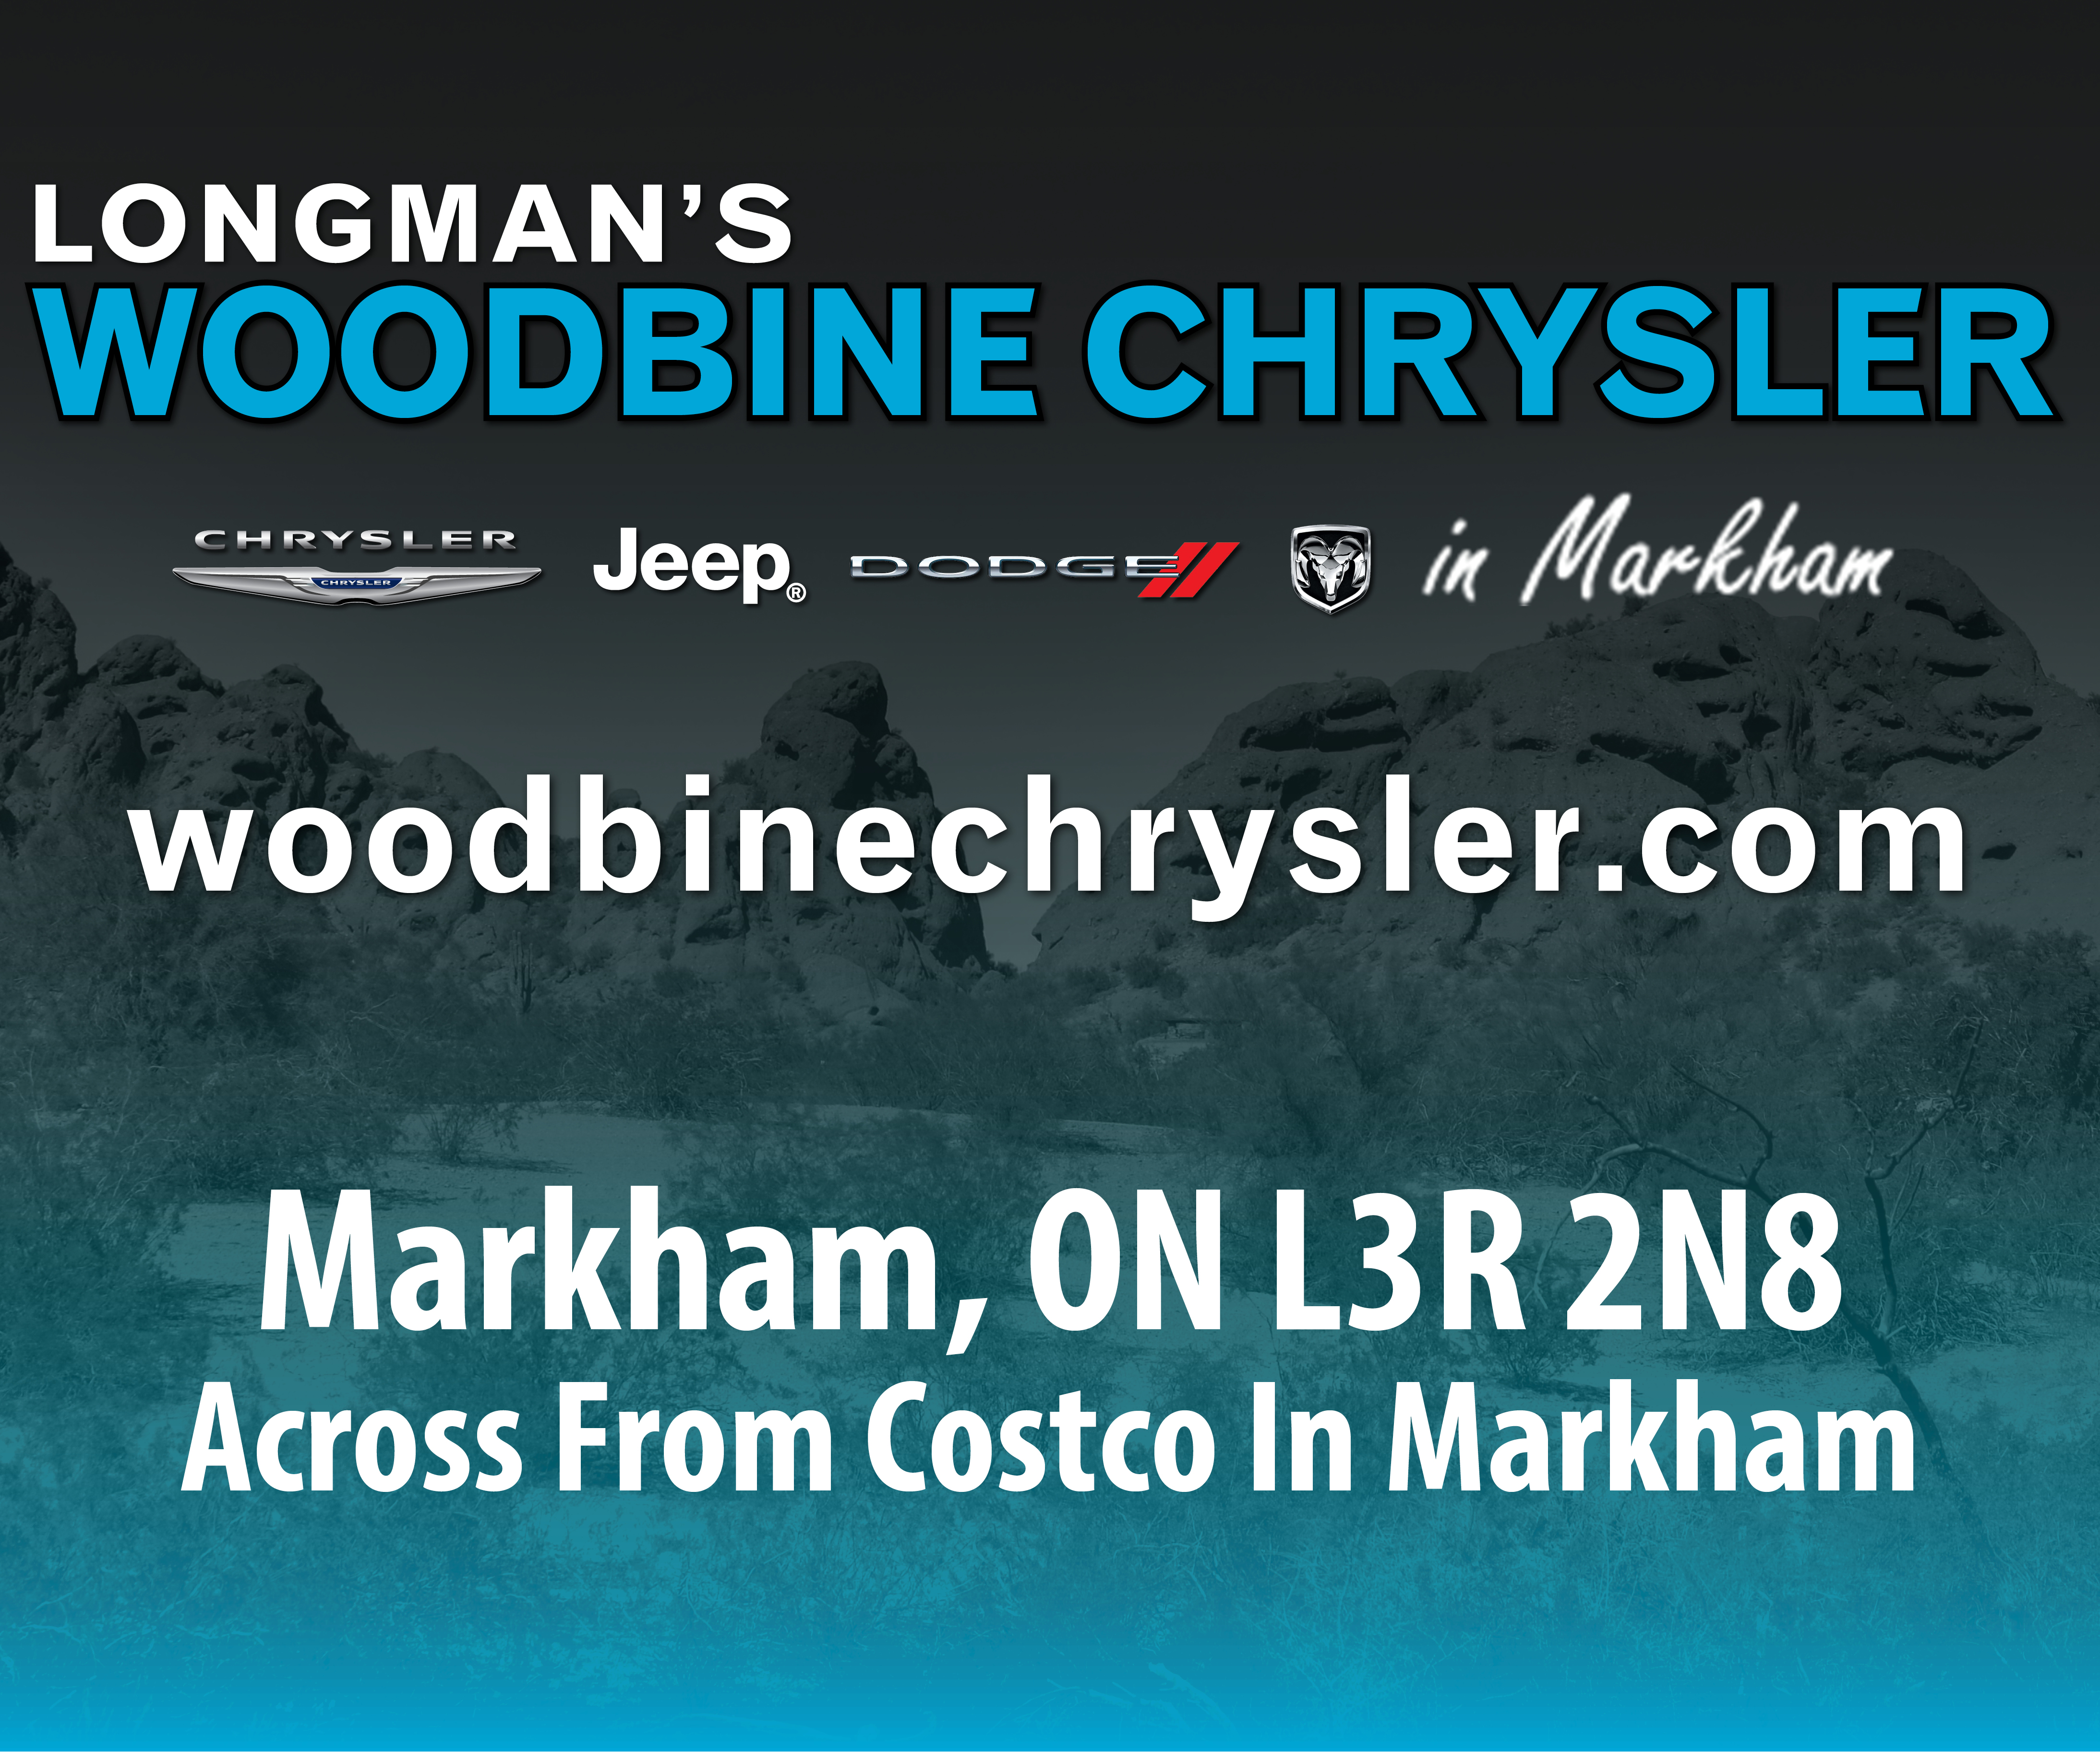 More from Longman's Woodbine Chrysler